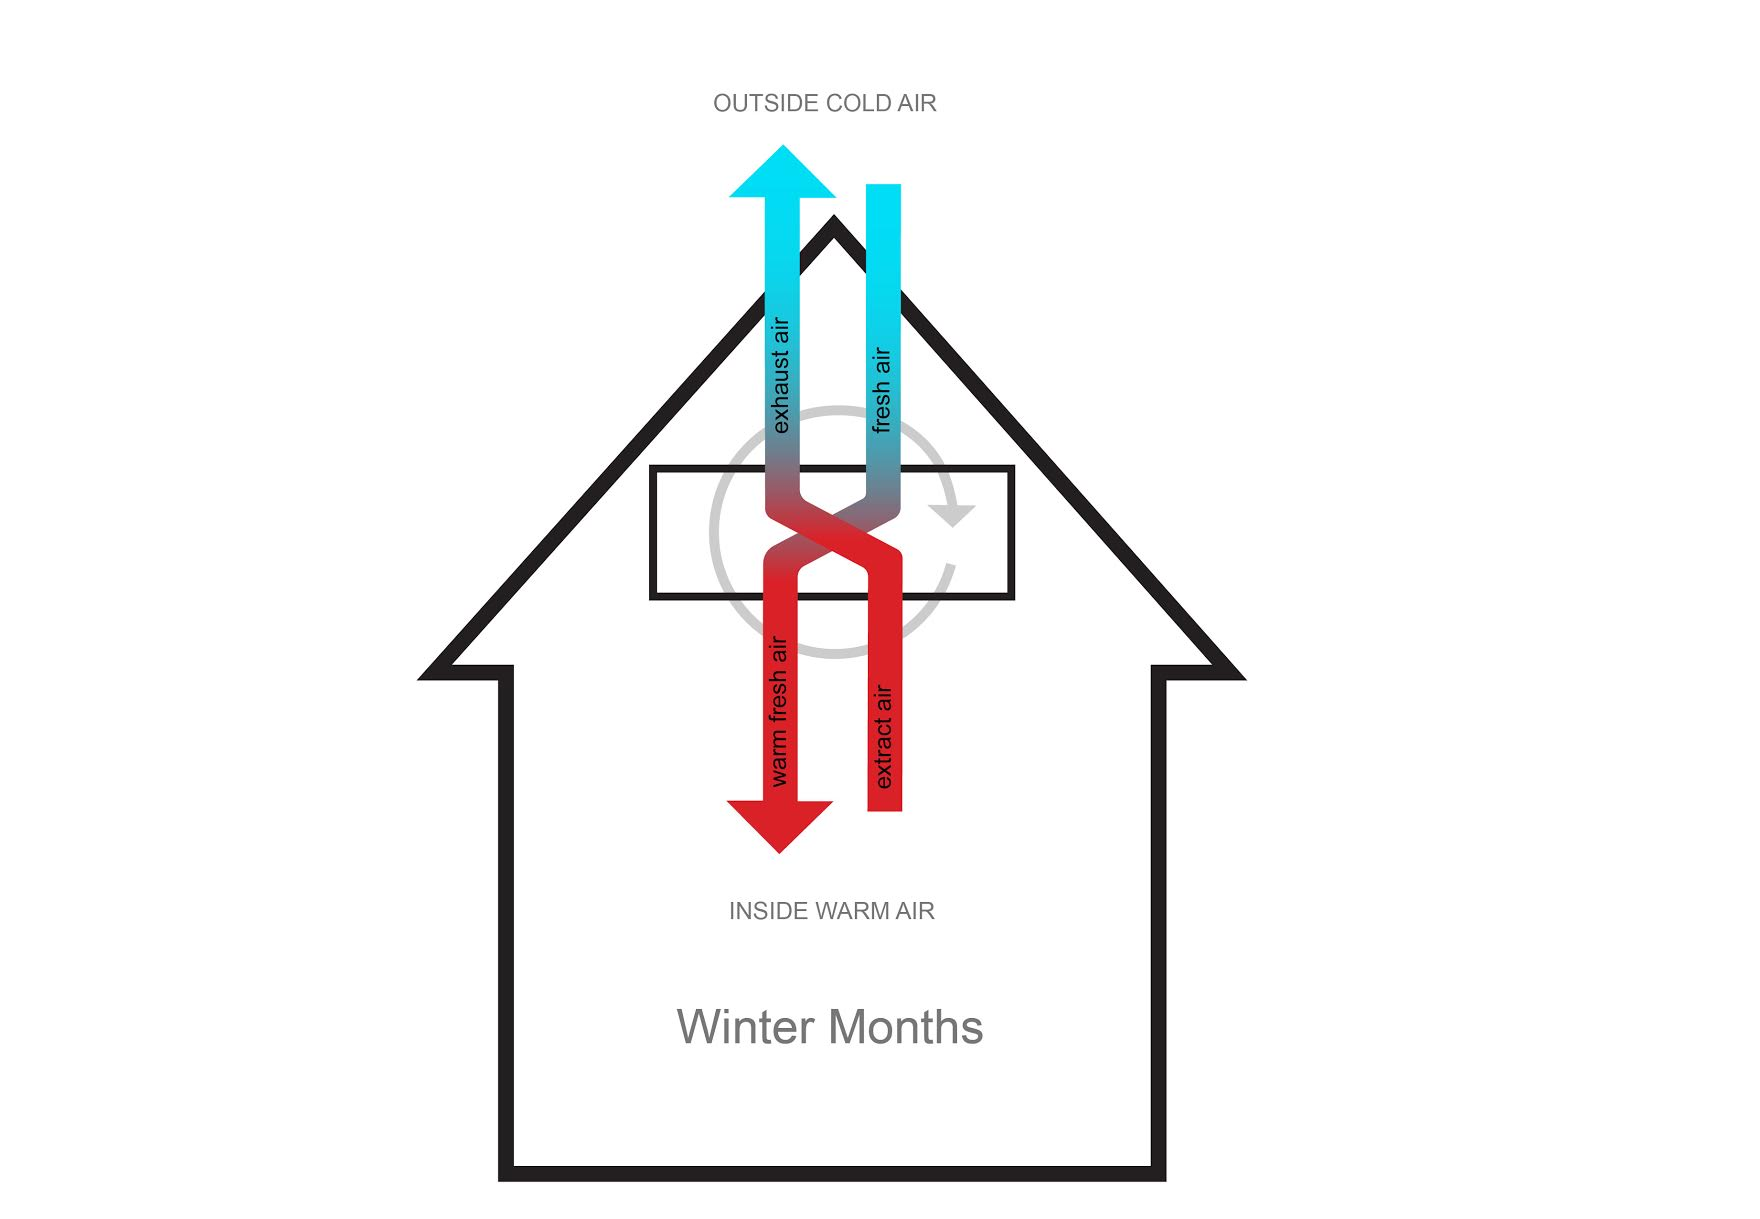 The Heat Recovery Process: How It Works In Winter Months      90 percent of heat from the outgoing exhaust air is transferred to the cool fresh air as it enters home, basically,once the heat is transferred on, it warms the incoming air to almost room temperature. The heat exchanger does not mix the fresh air and exhaust air: all that is transferred is the heat.   The heat exchanger also include a filter which eliminates pollutants, pollens and other allergens.    The remaining heat required would be supplied by the sun, body occupants, and household appliances.